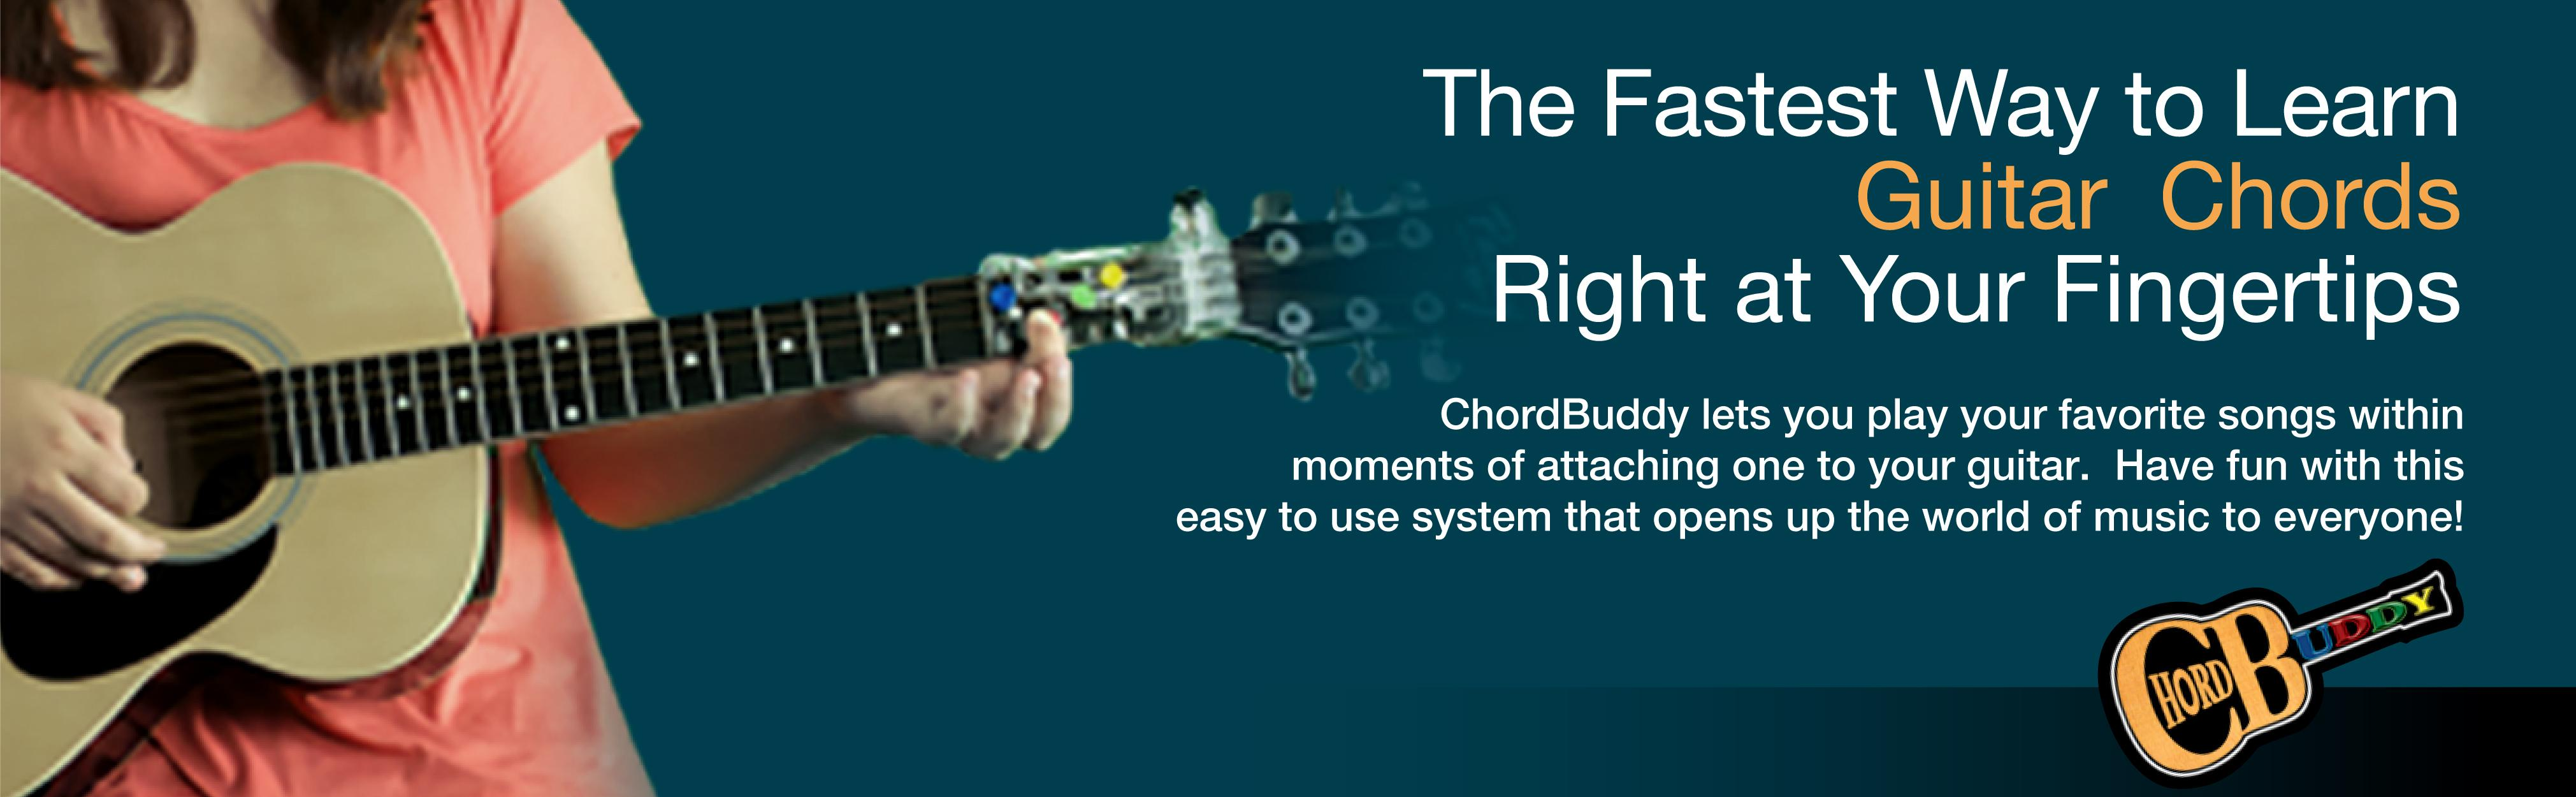 Amazon Chordbuddy Guitar Learning System For Left Handed